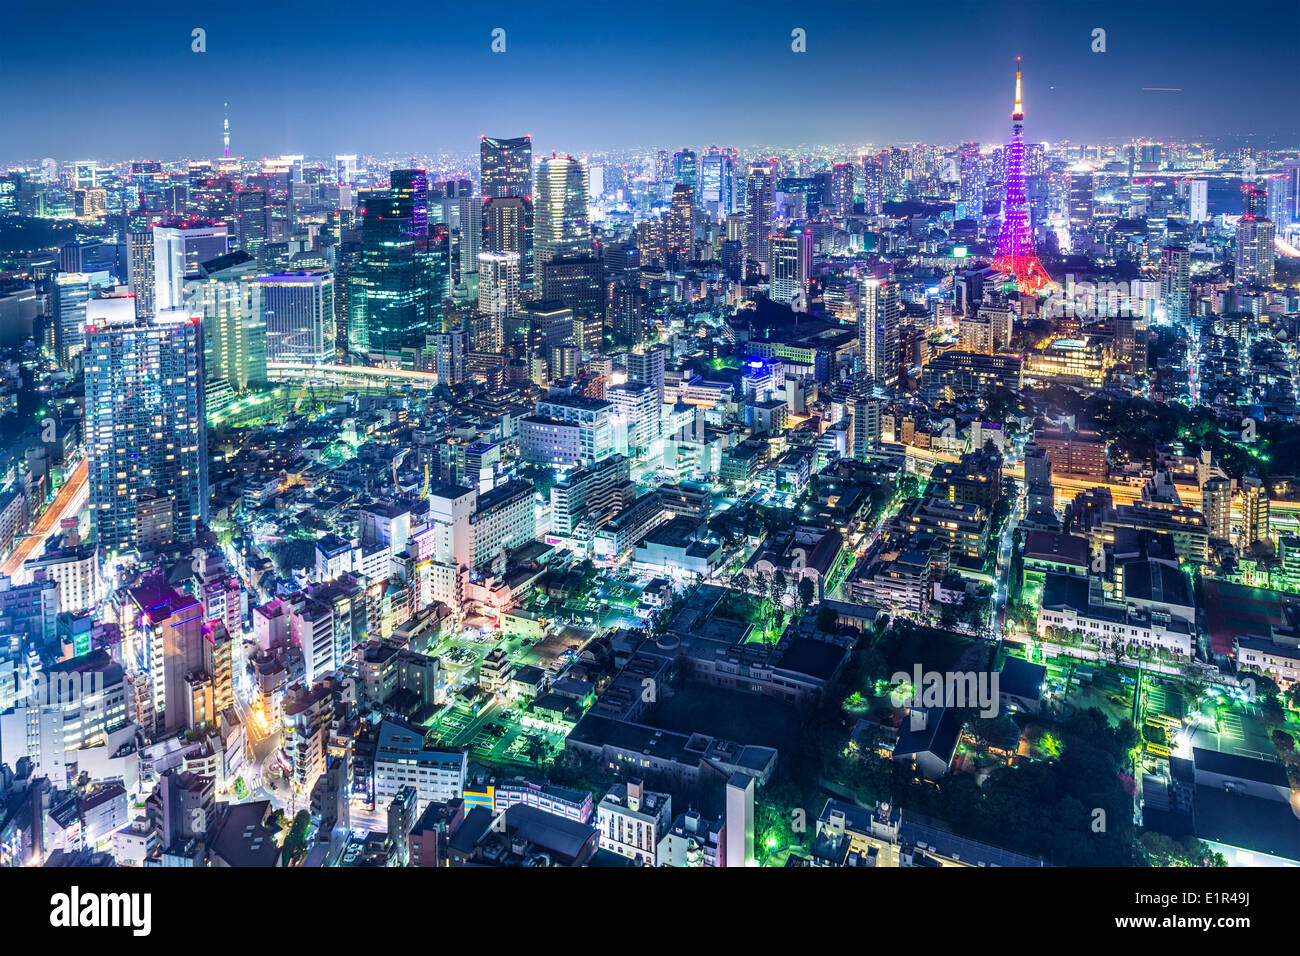 Tokyo, Japan city skyline with Tokyo Tower and Tokyo Skytree in the distance. Stock Photo